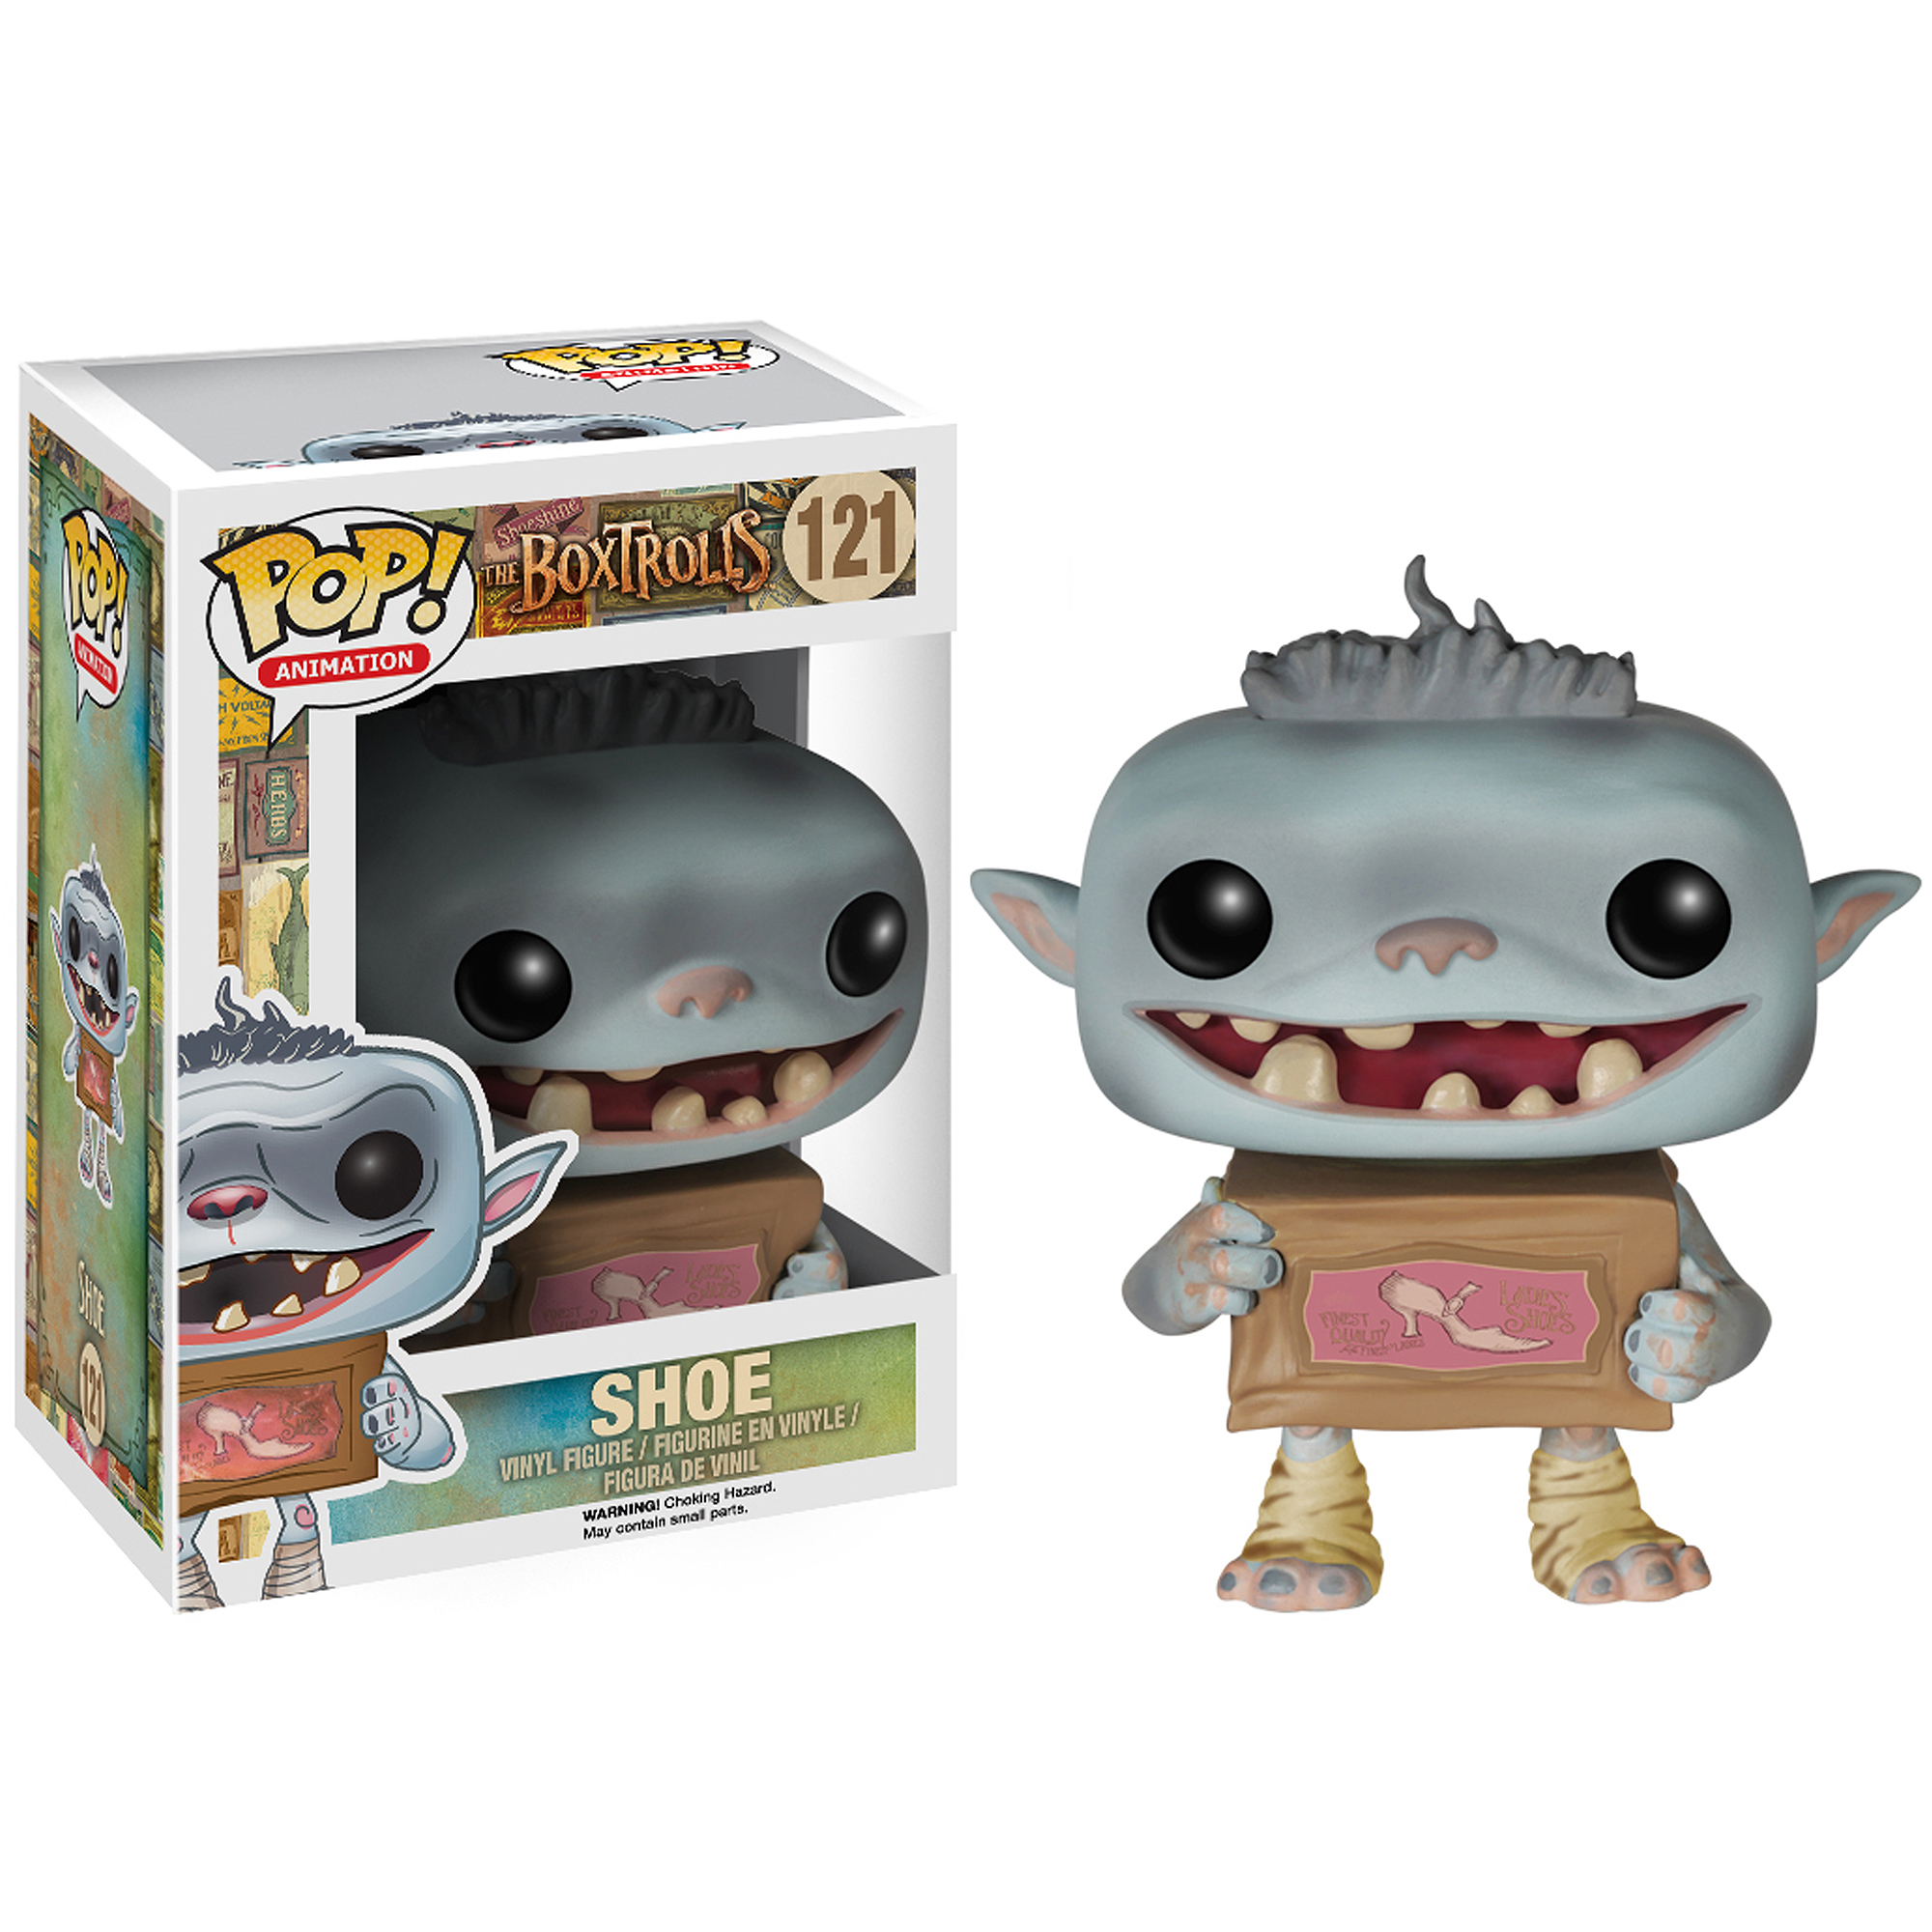 Funko Universal Studios The Boxtrolls Shoe Pop Vinyl Figure